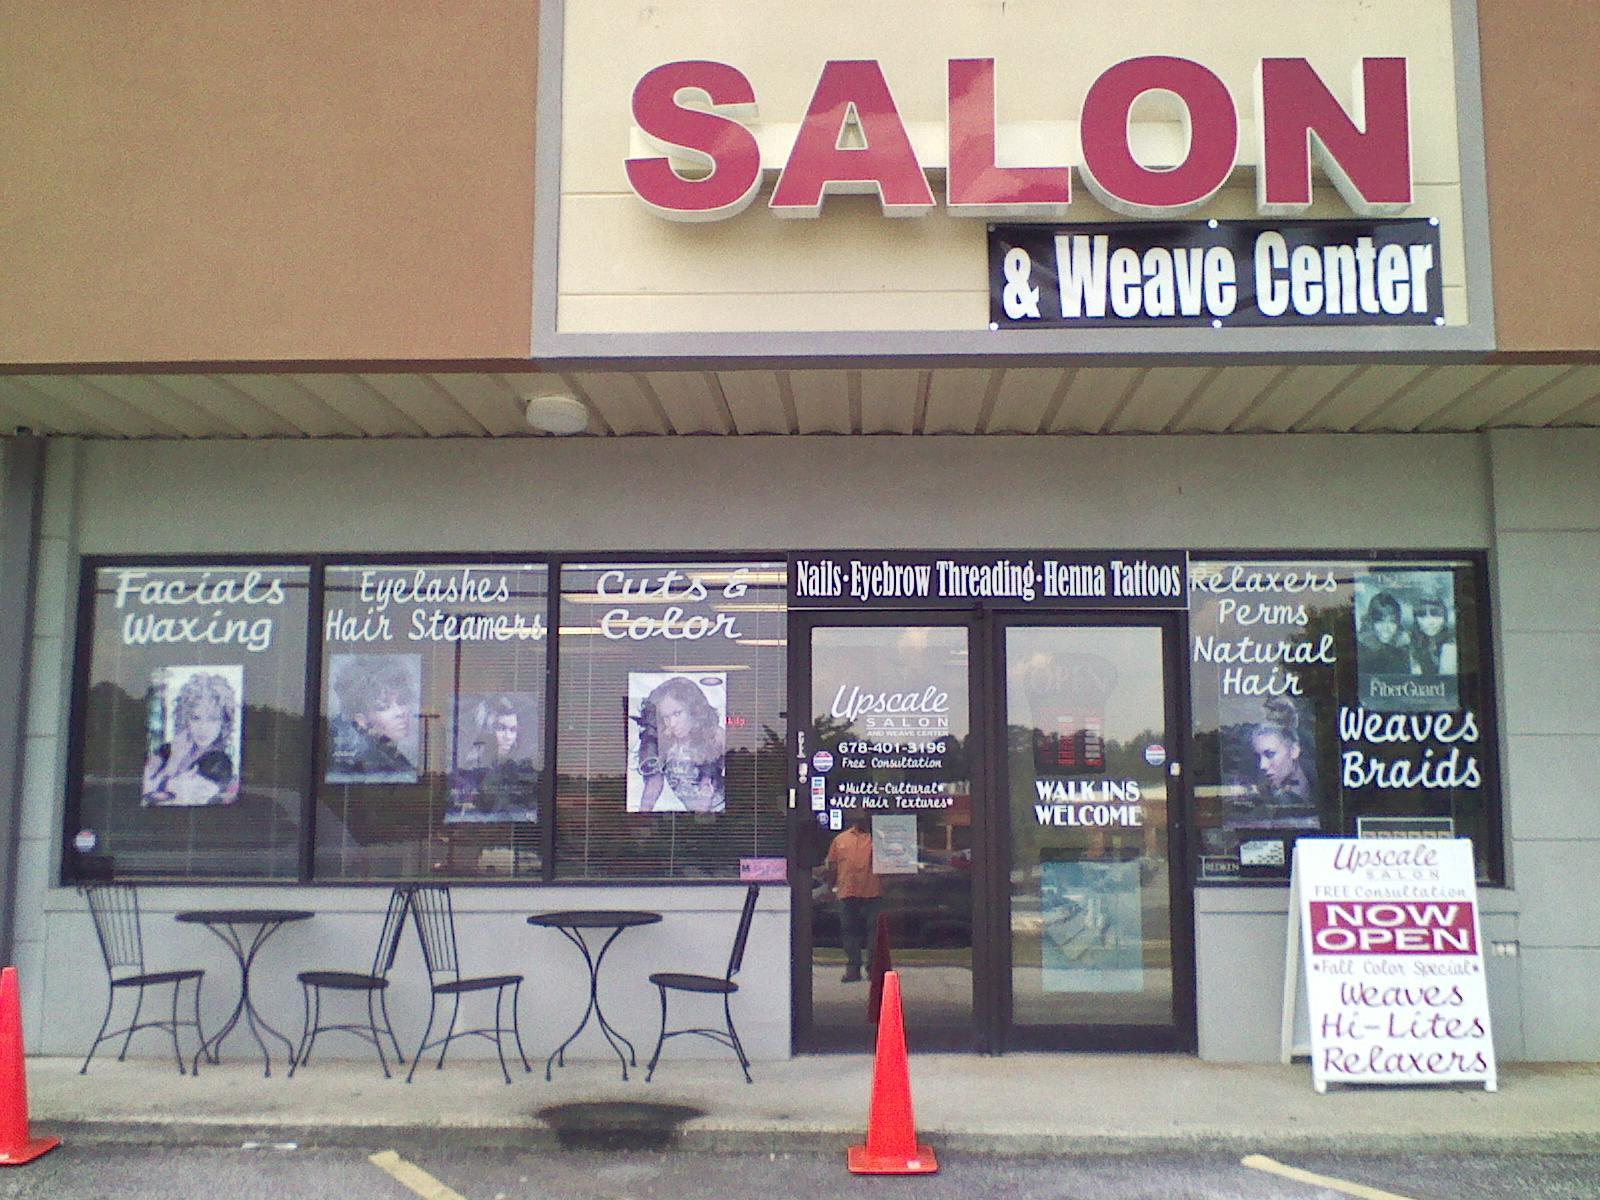 Upscale Salon and Weave Center